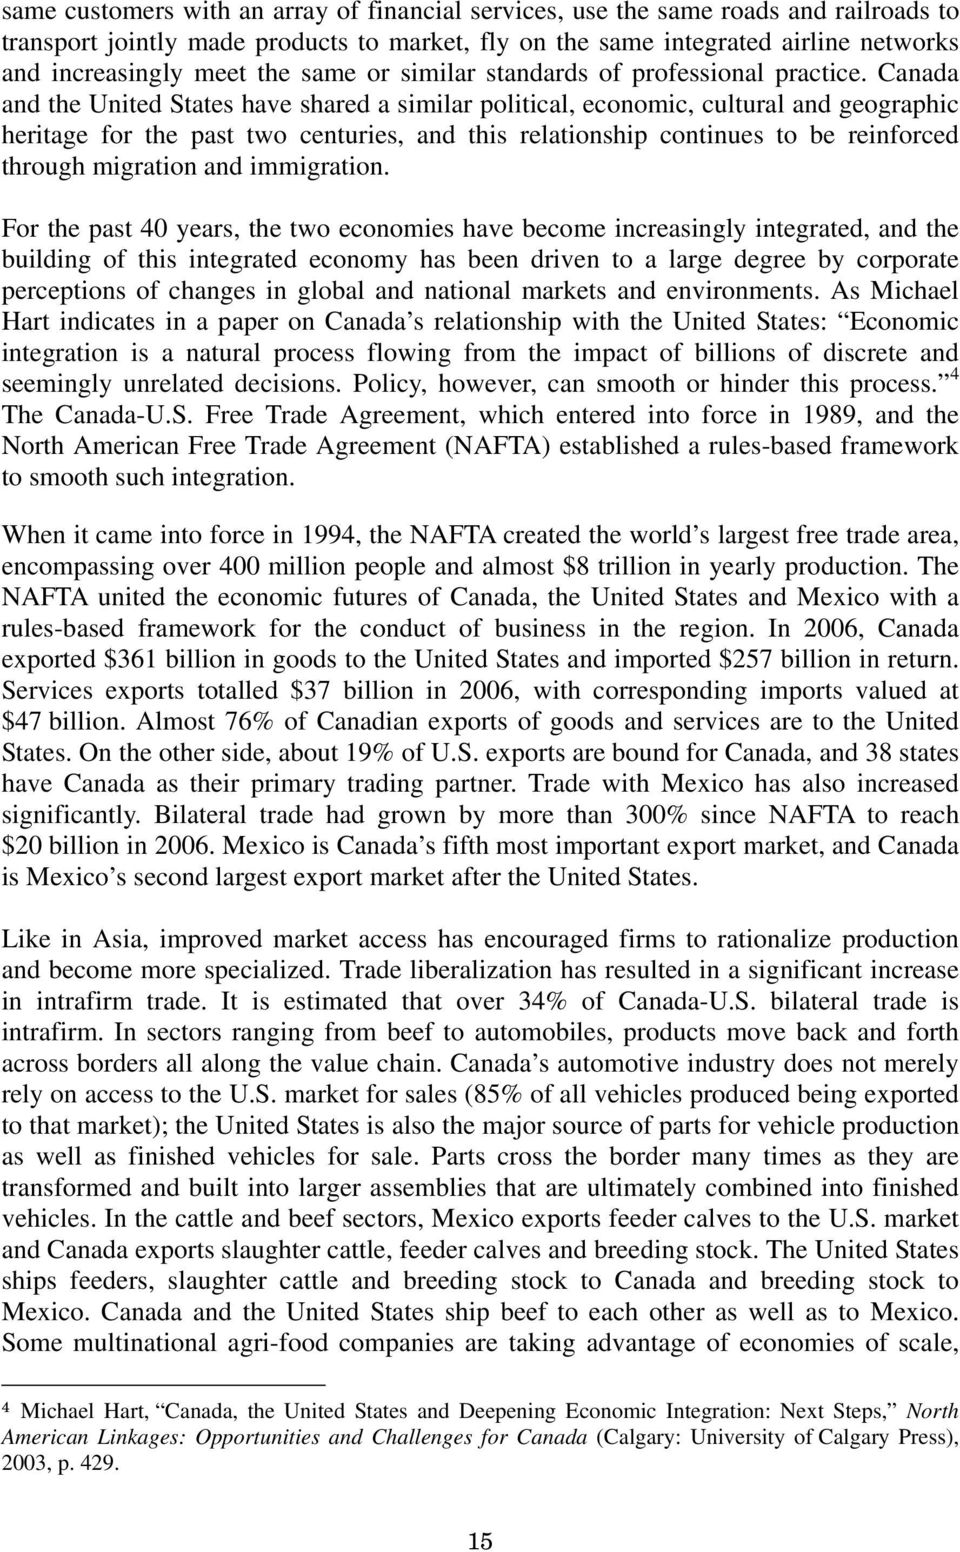 Canada and the United States have shared a similar political, economic, cultural and geographic heritage for the past two centuries, and this relationship continues to be reinforced through migration